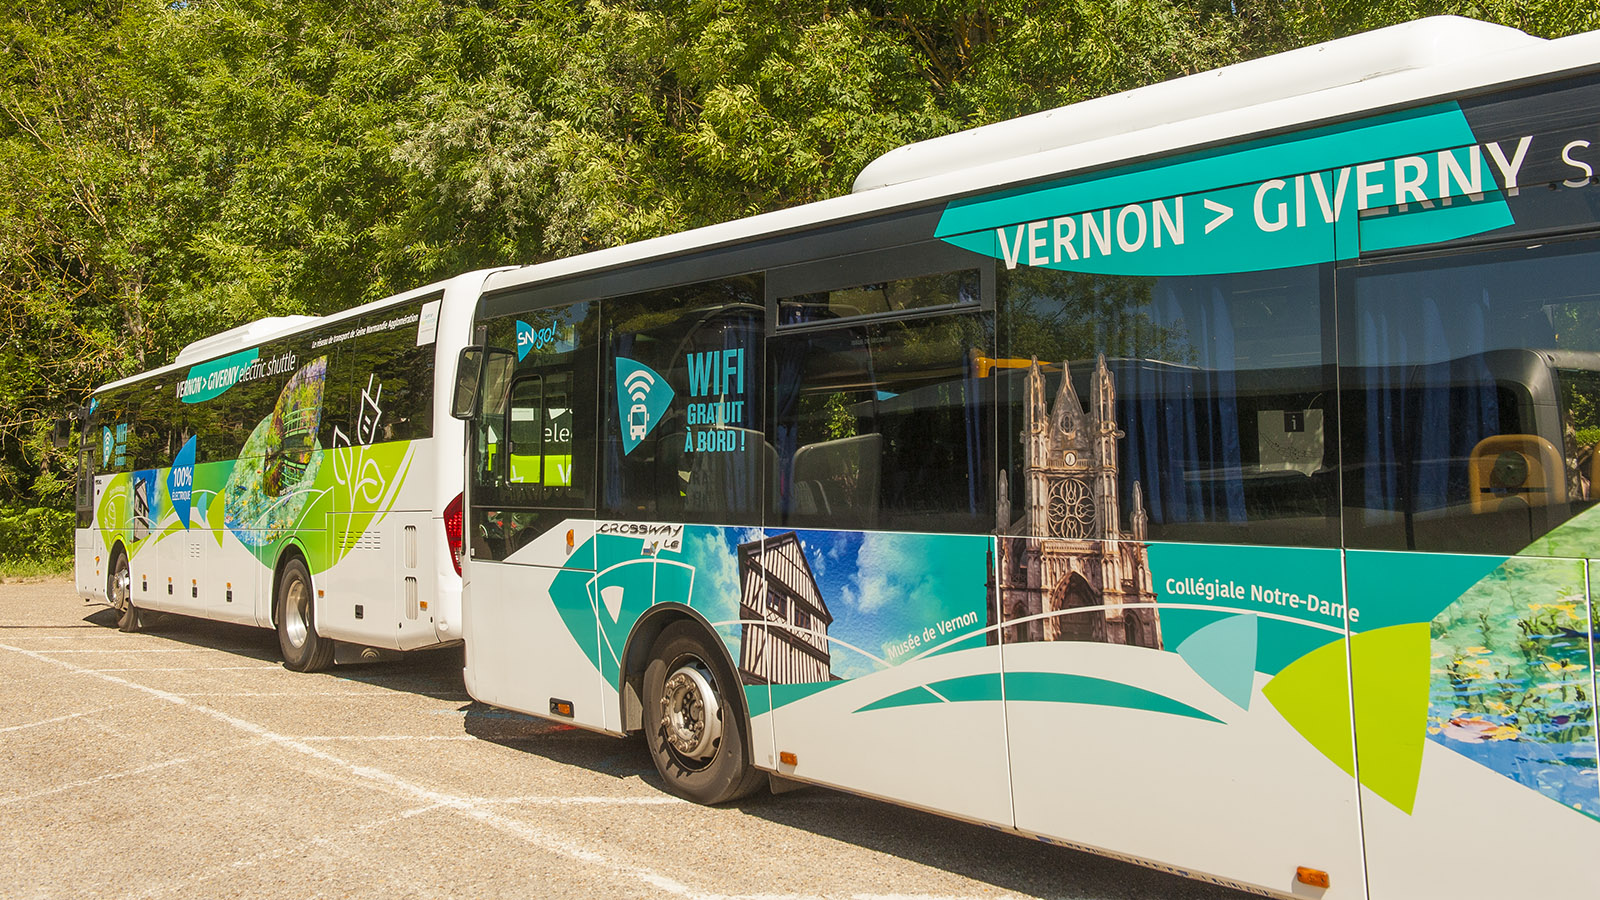 Monet in Giverny: der Busshuttle